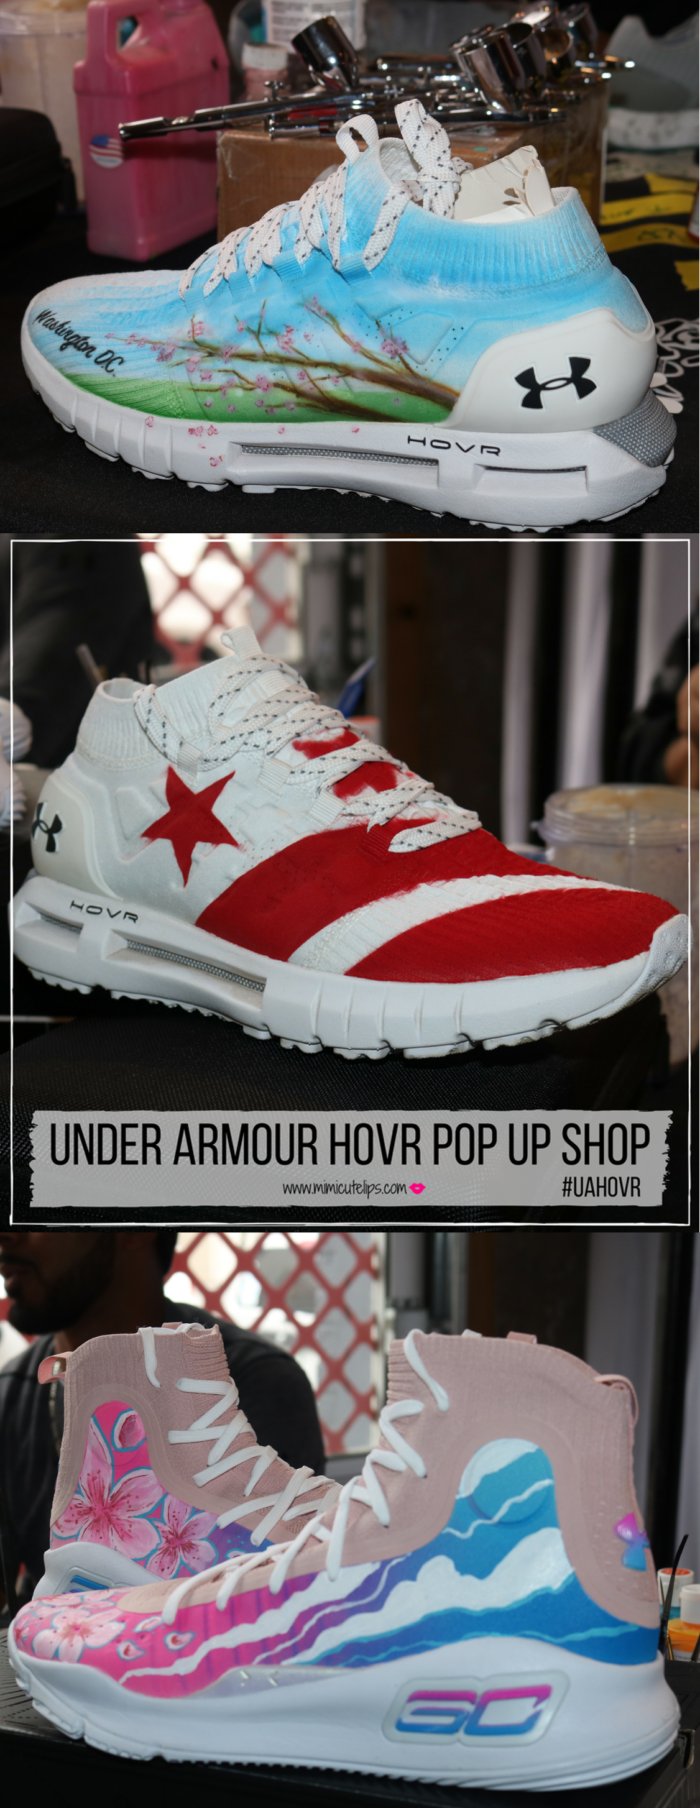 Under Armour HOVR came to DC for a Pop Up Shop experience at the Longview Gallery. Lifestyle Media Correspondent MimiCuteLips is giving a full recap and sharing how she scored three pairs of FREE #UAHOVR sneakers at this event.